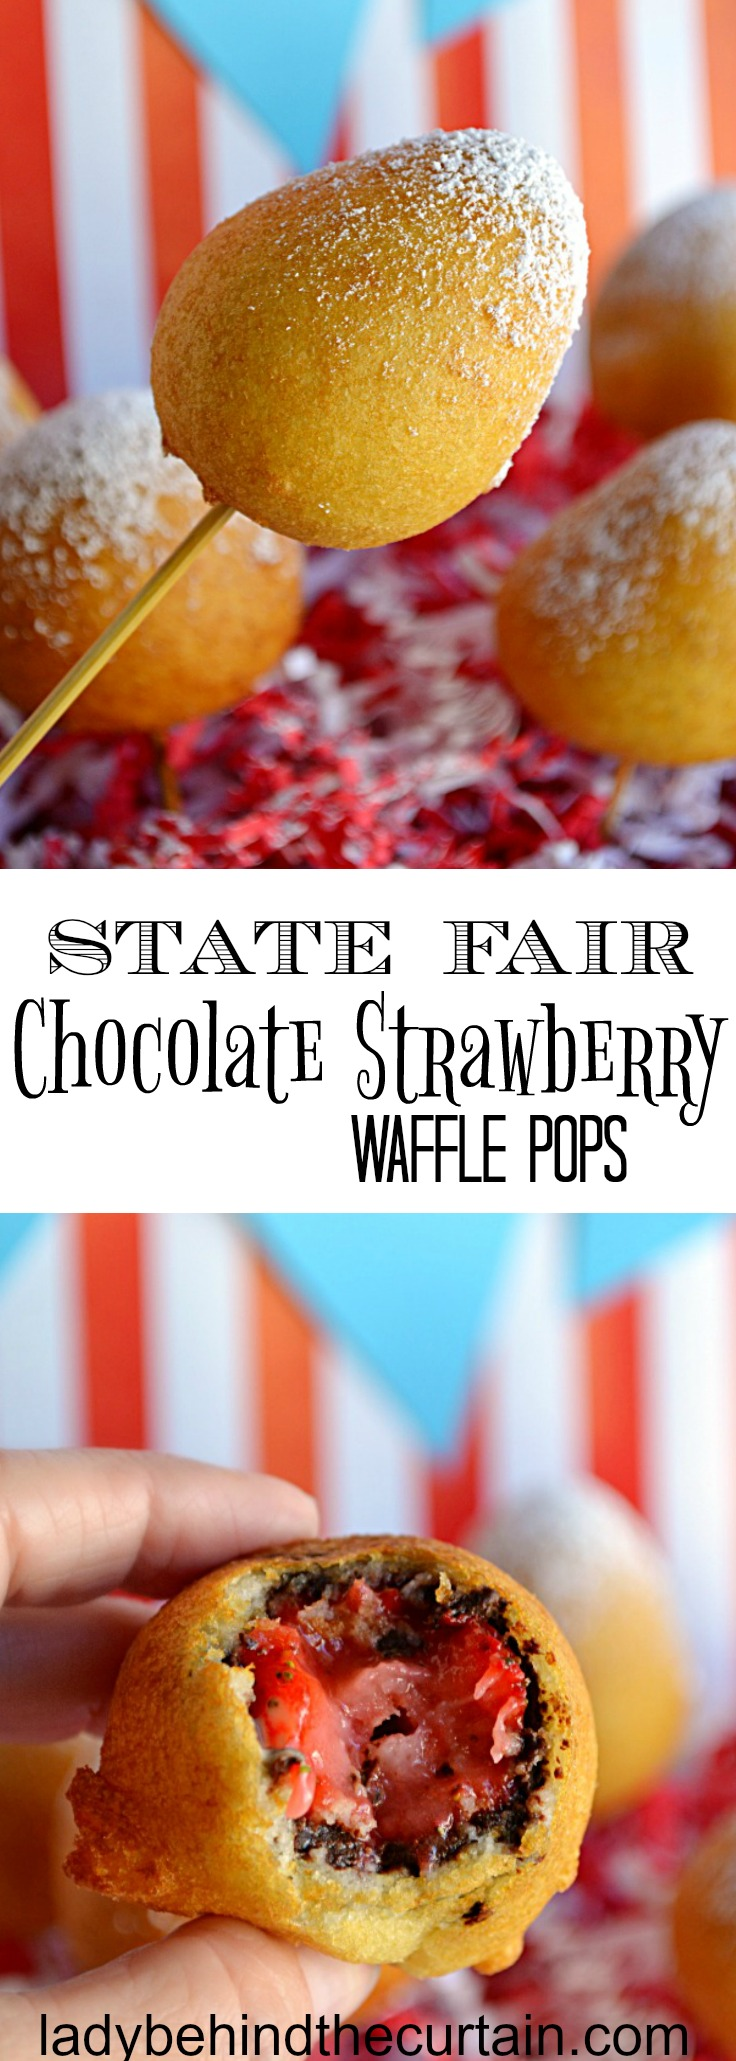 State Fair Chocolate Strawberry Waffle Pops   carnival party, state fair party, circus party, chocolate recipe, strawberry recipe, waffle recipe